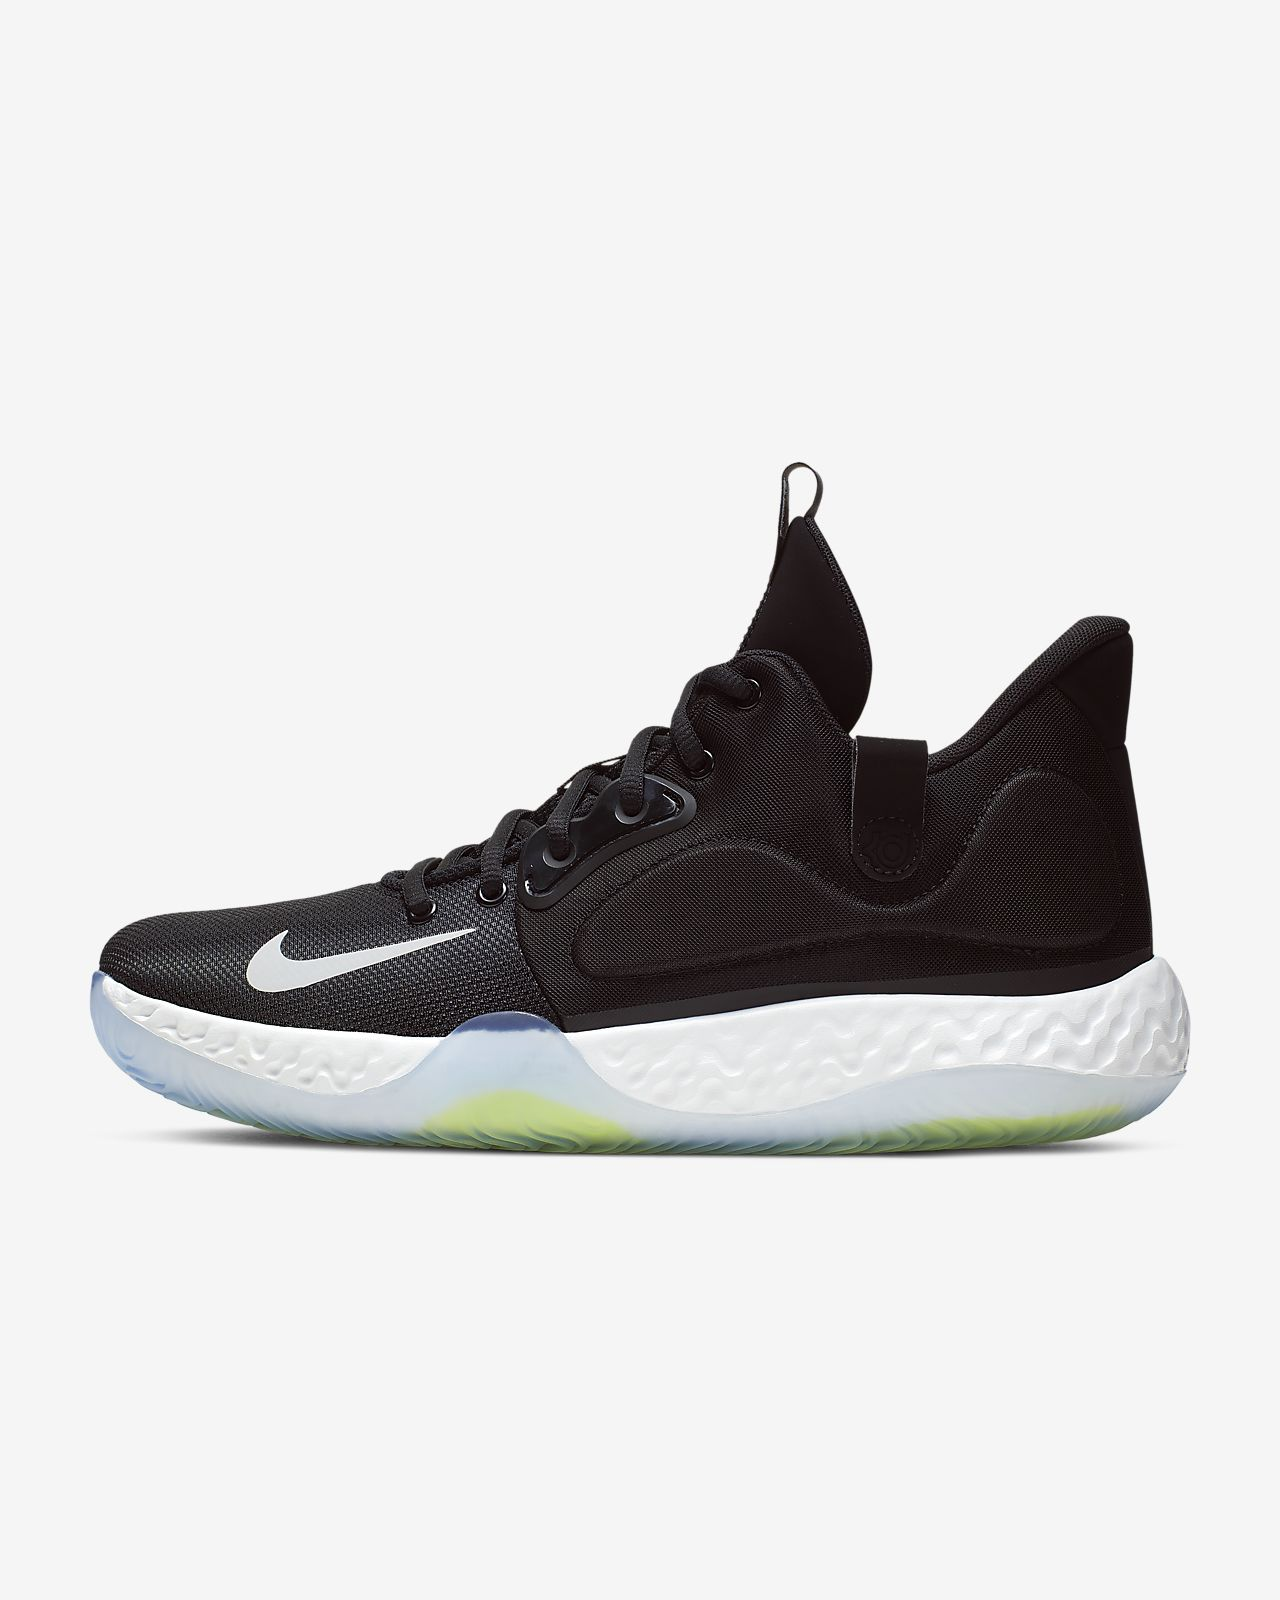 clearance prices online here new arrival Chaussure KD Trey 5 VII. Nike LU